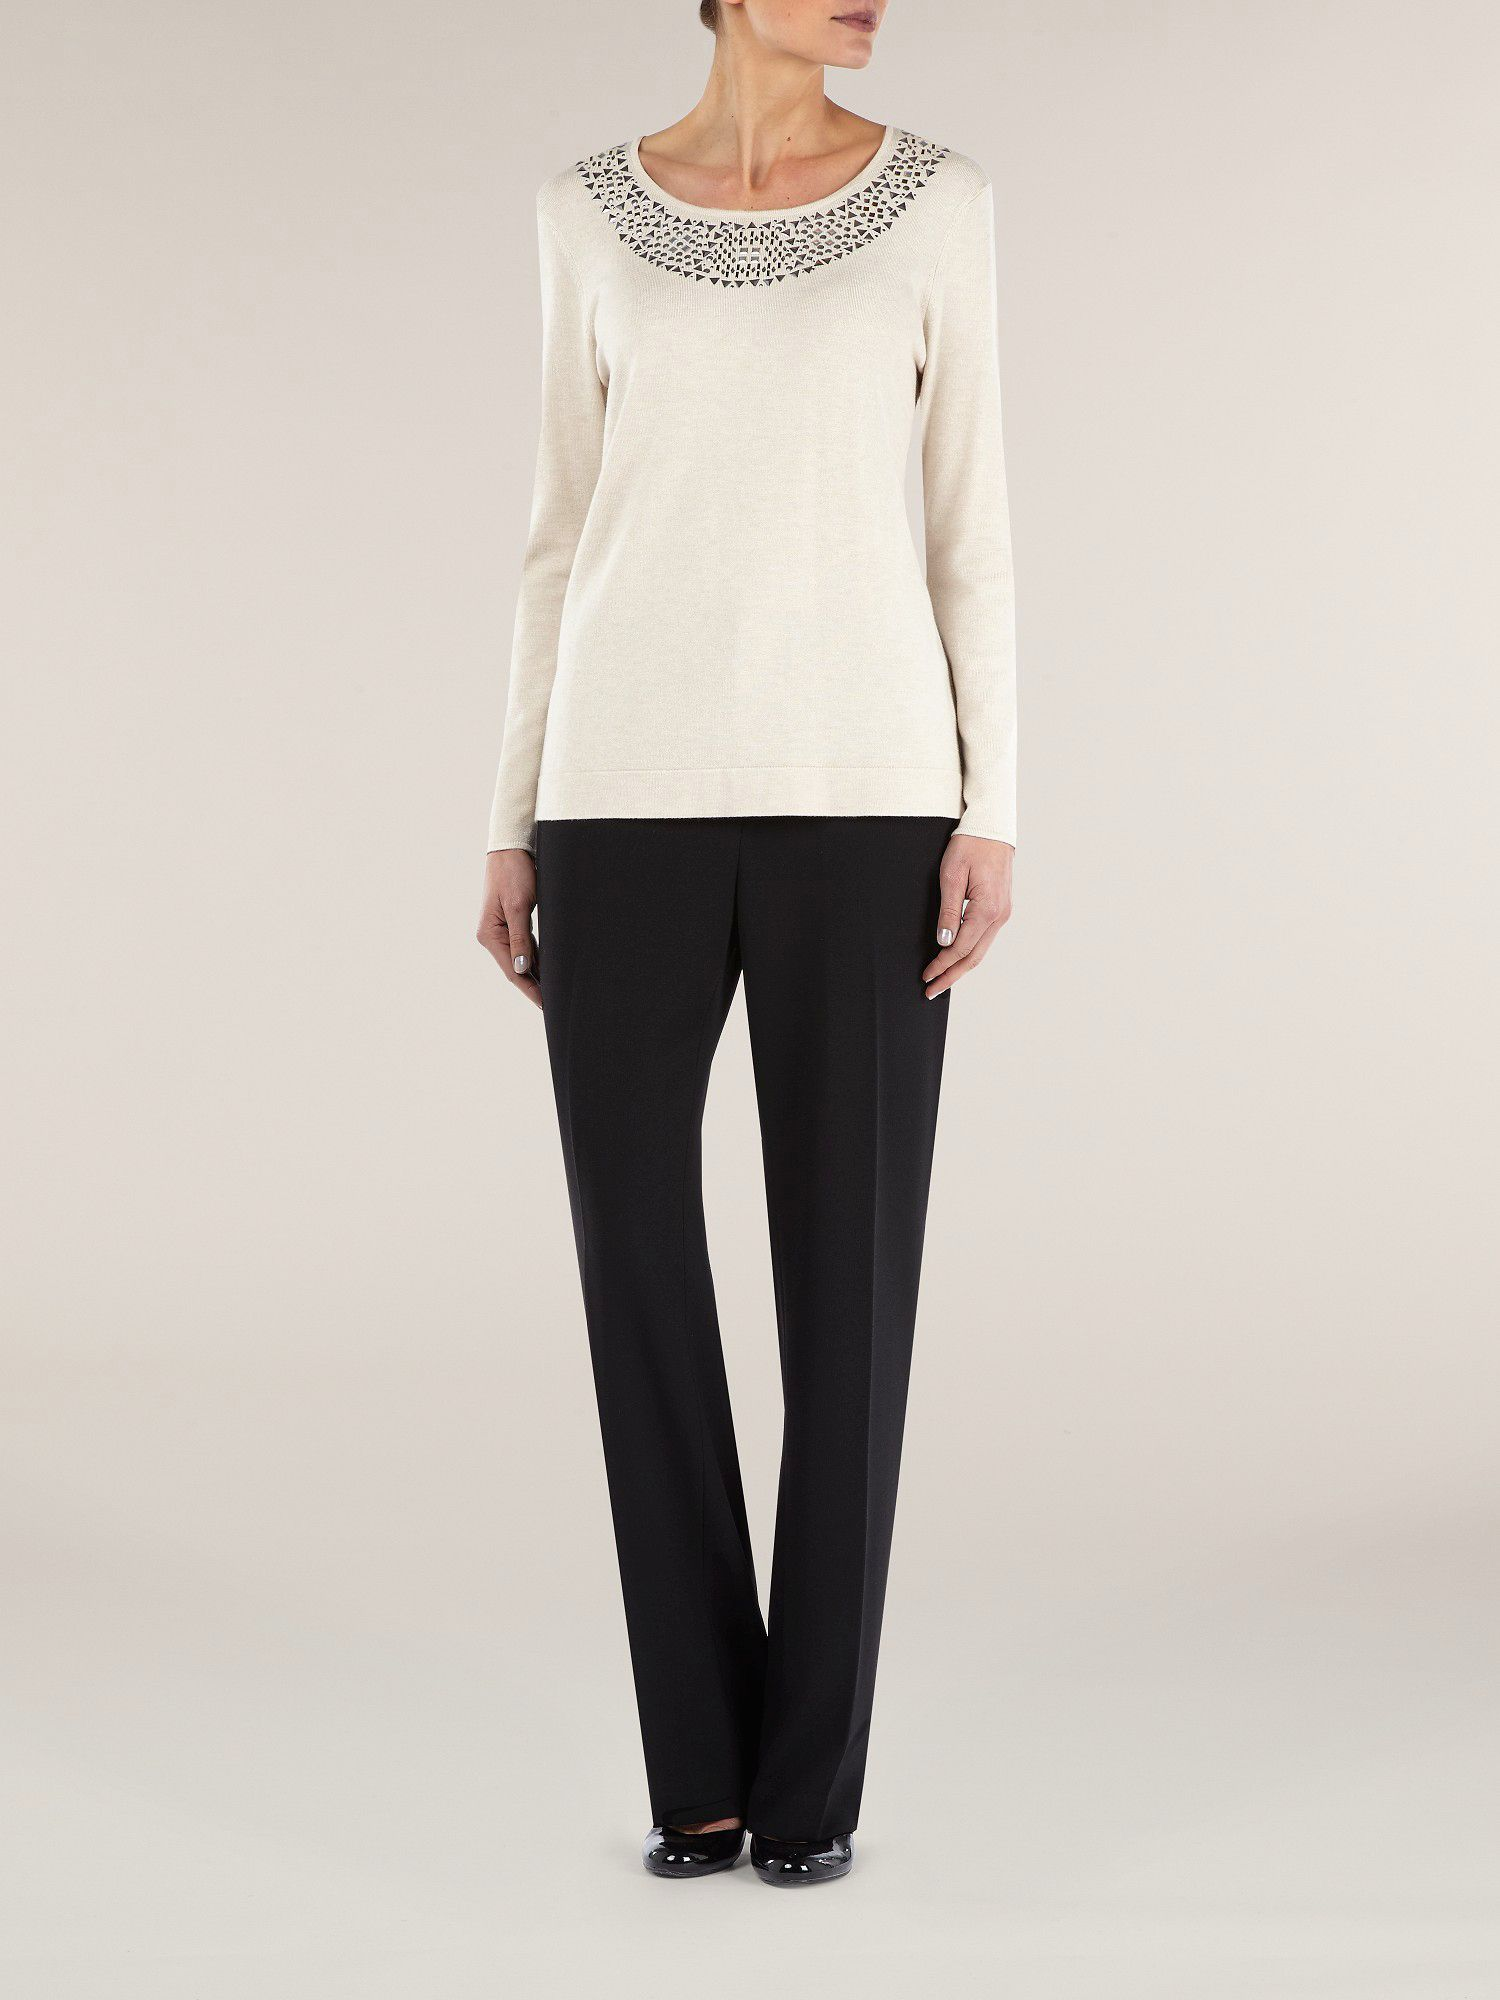 Stone embellished jumper